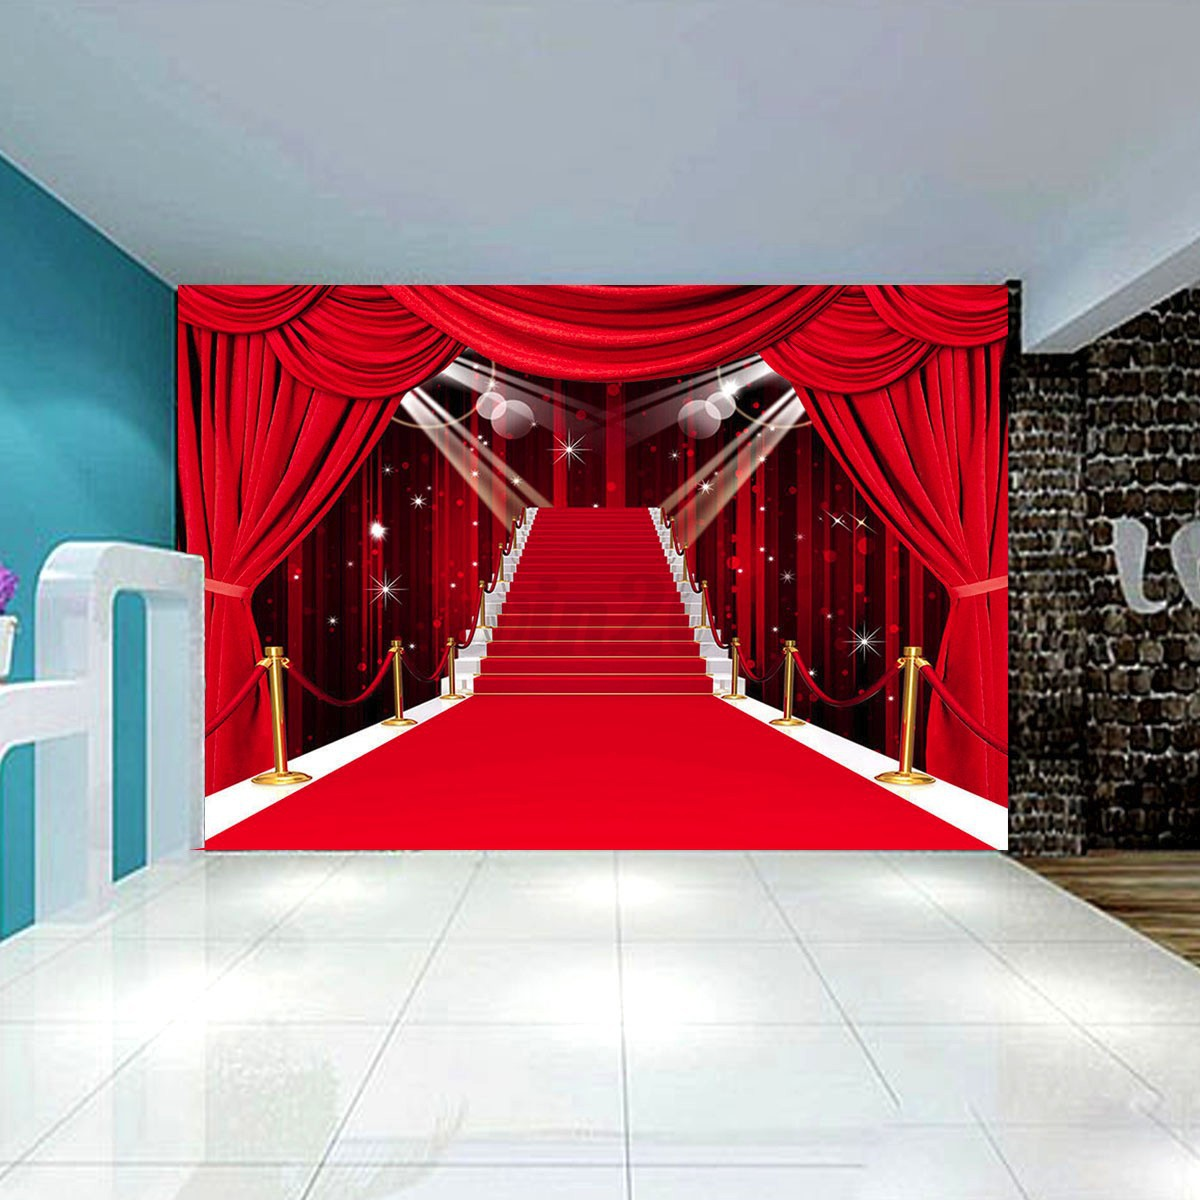 7x5ft stage aisle red carpet photography backdrop studio props photo background ebay - Red carpet photographers ...